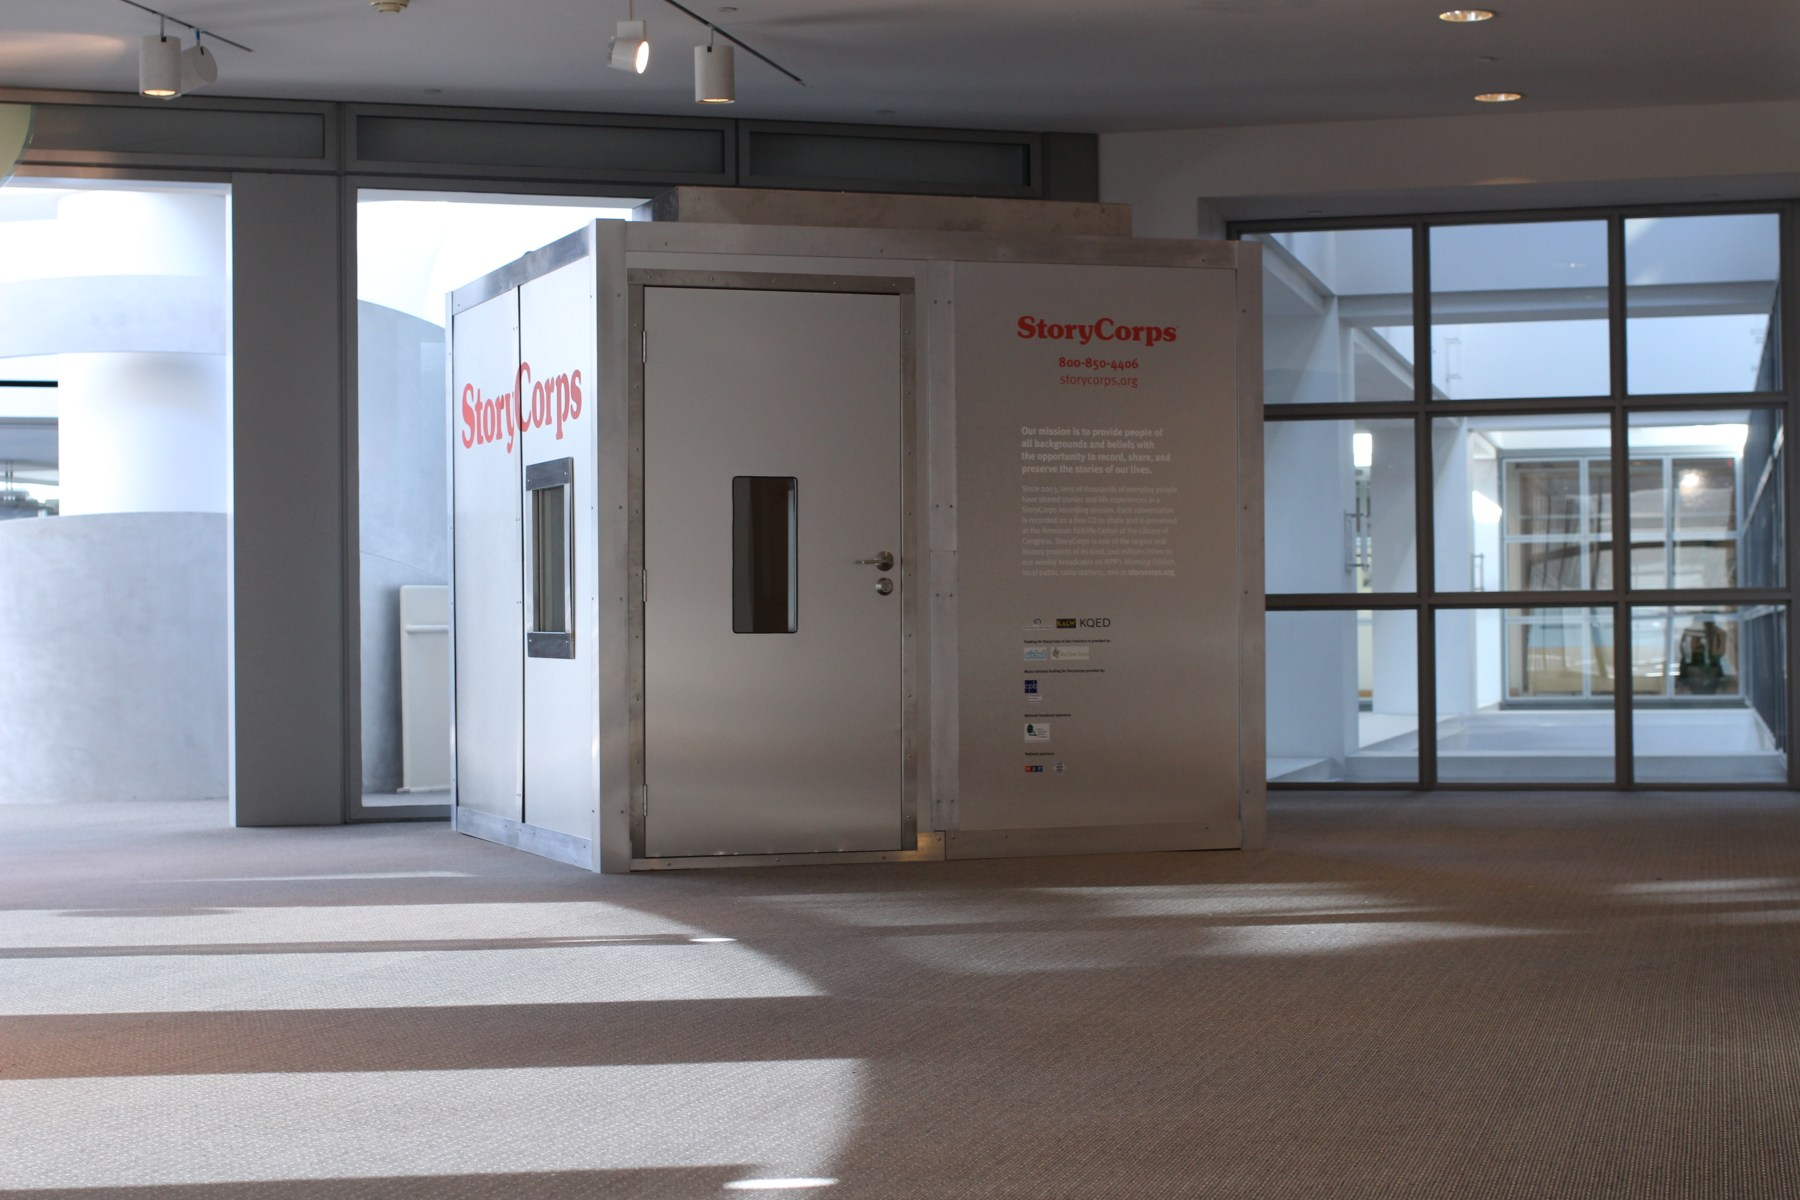 An image of a recording booth located at the Main Library in San Francisco